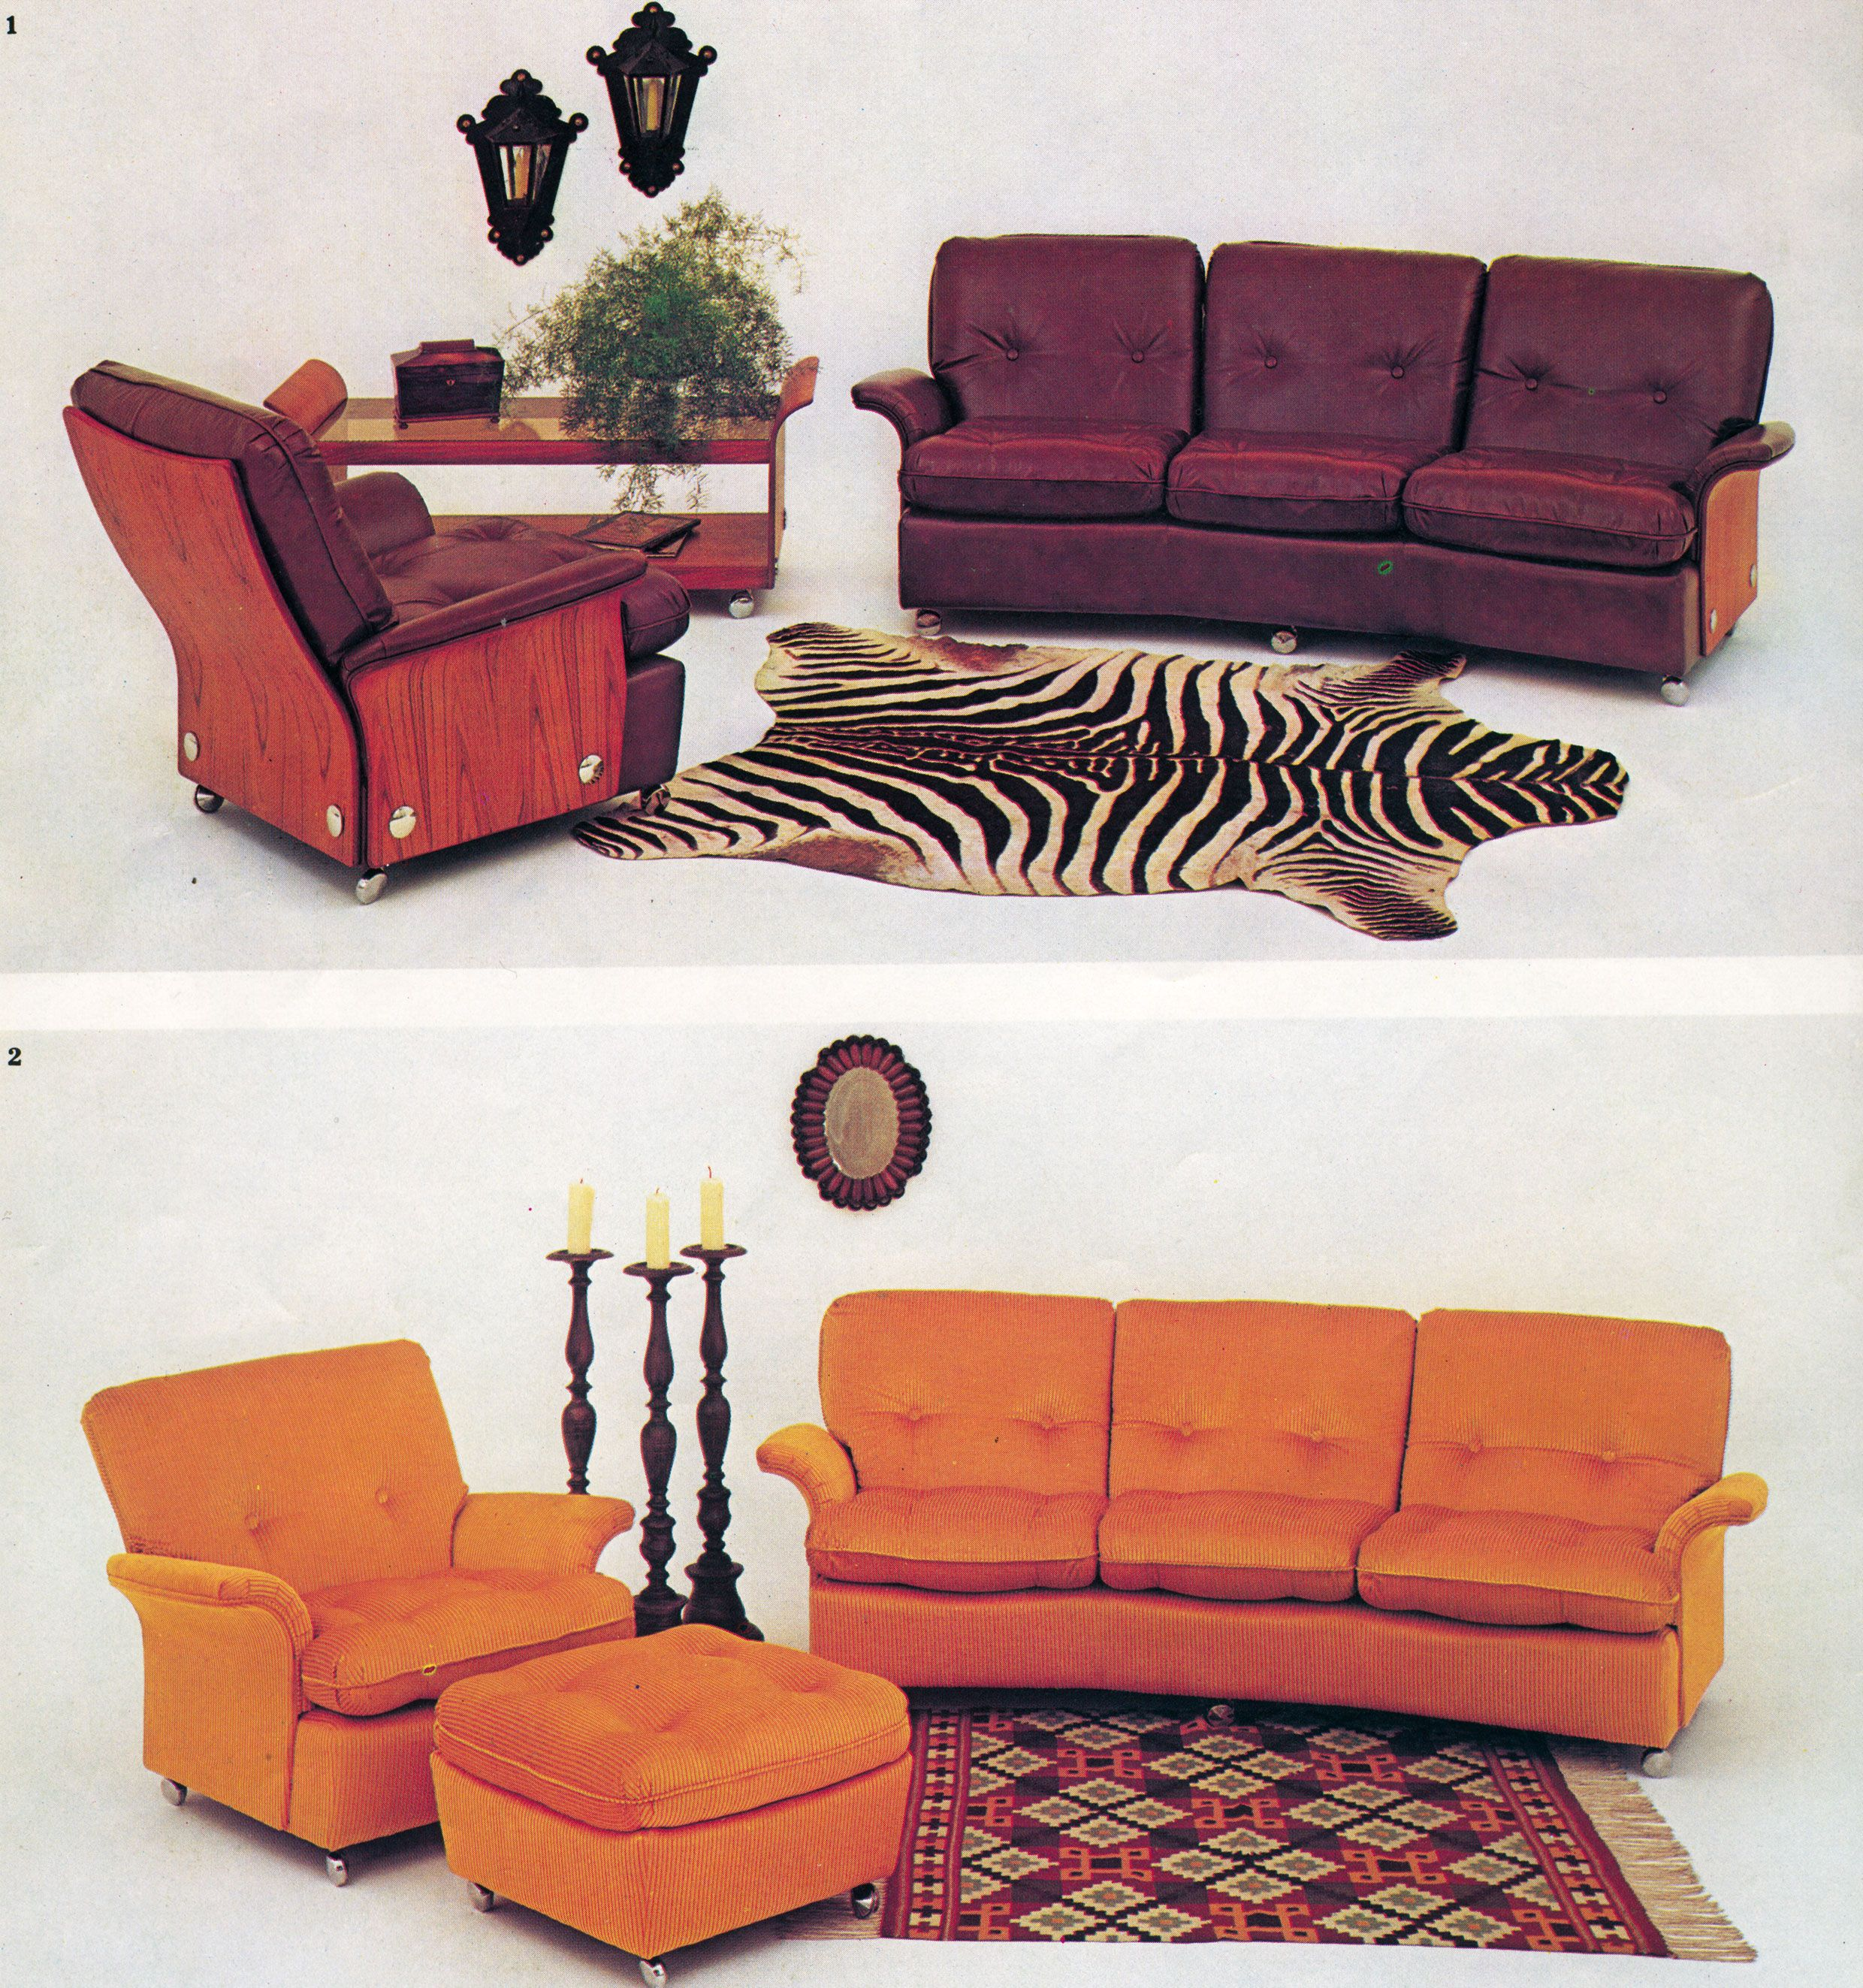 Original G Plan Designs From The Mid Century The Tulip Was Designed Right At The End Of The 60s Retro Room Furniture Iconic Furniture